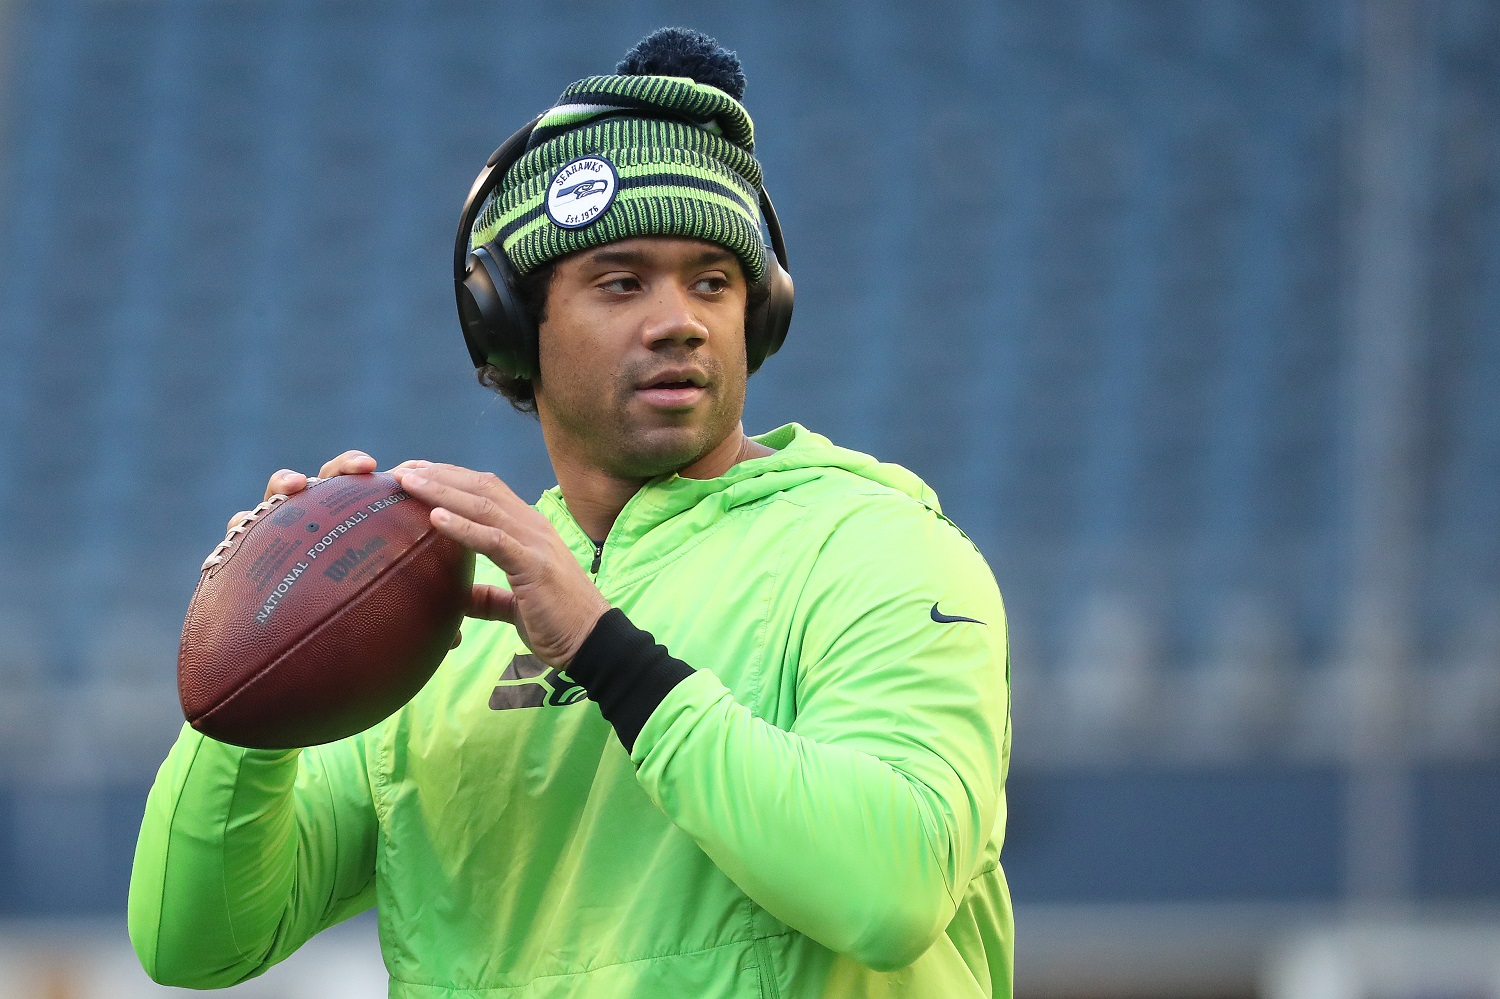 Russell Wilson probably has not thrown his last pass for the Seattle Seahawks, but his future remains unclear.